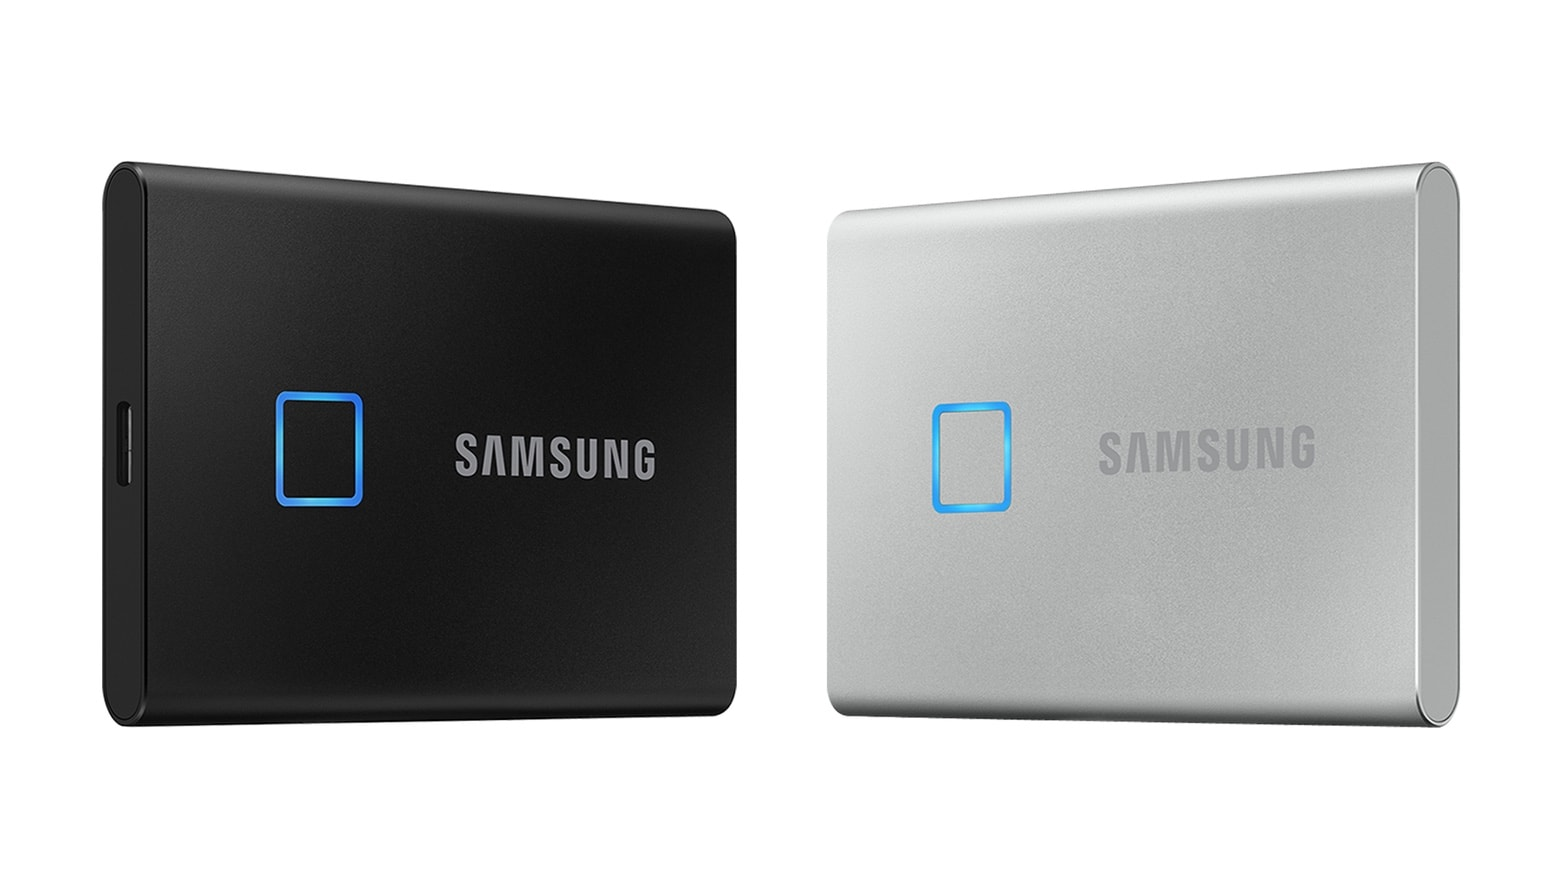 Samsung T7 Touch holds up to 2TB